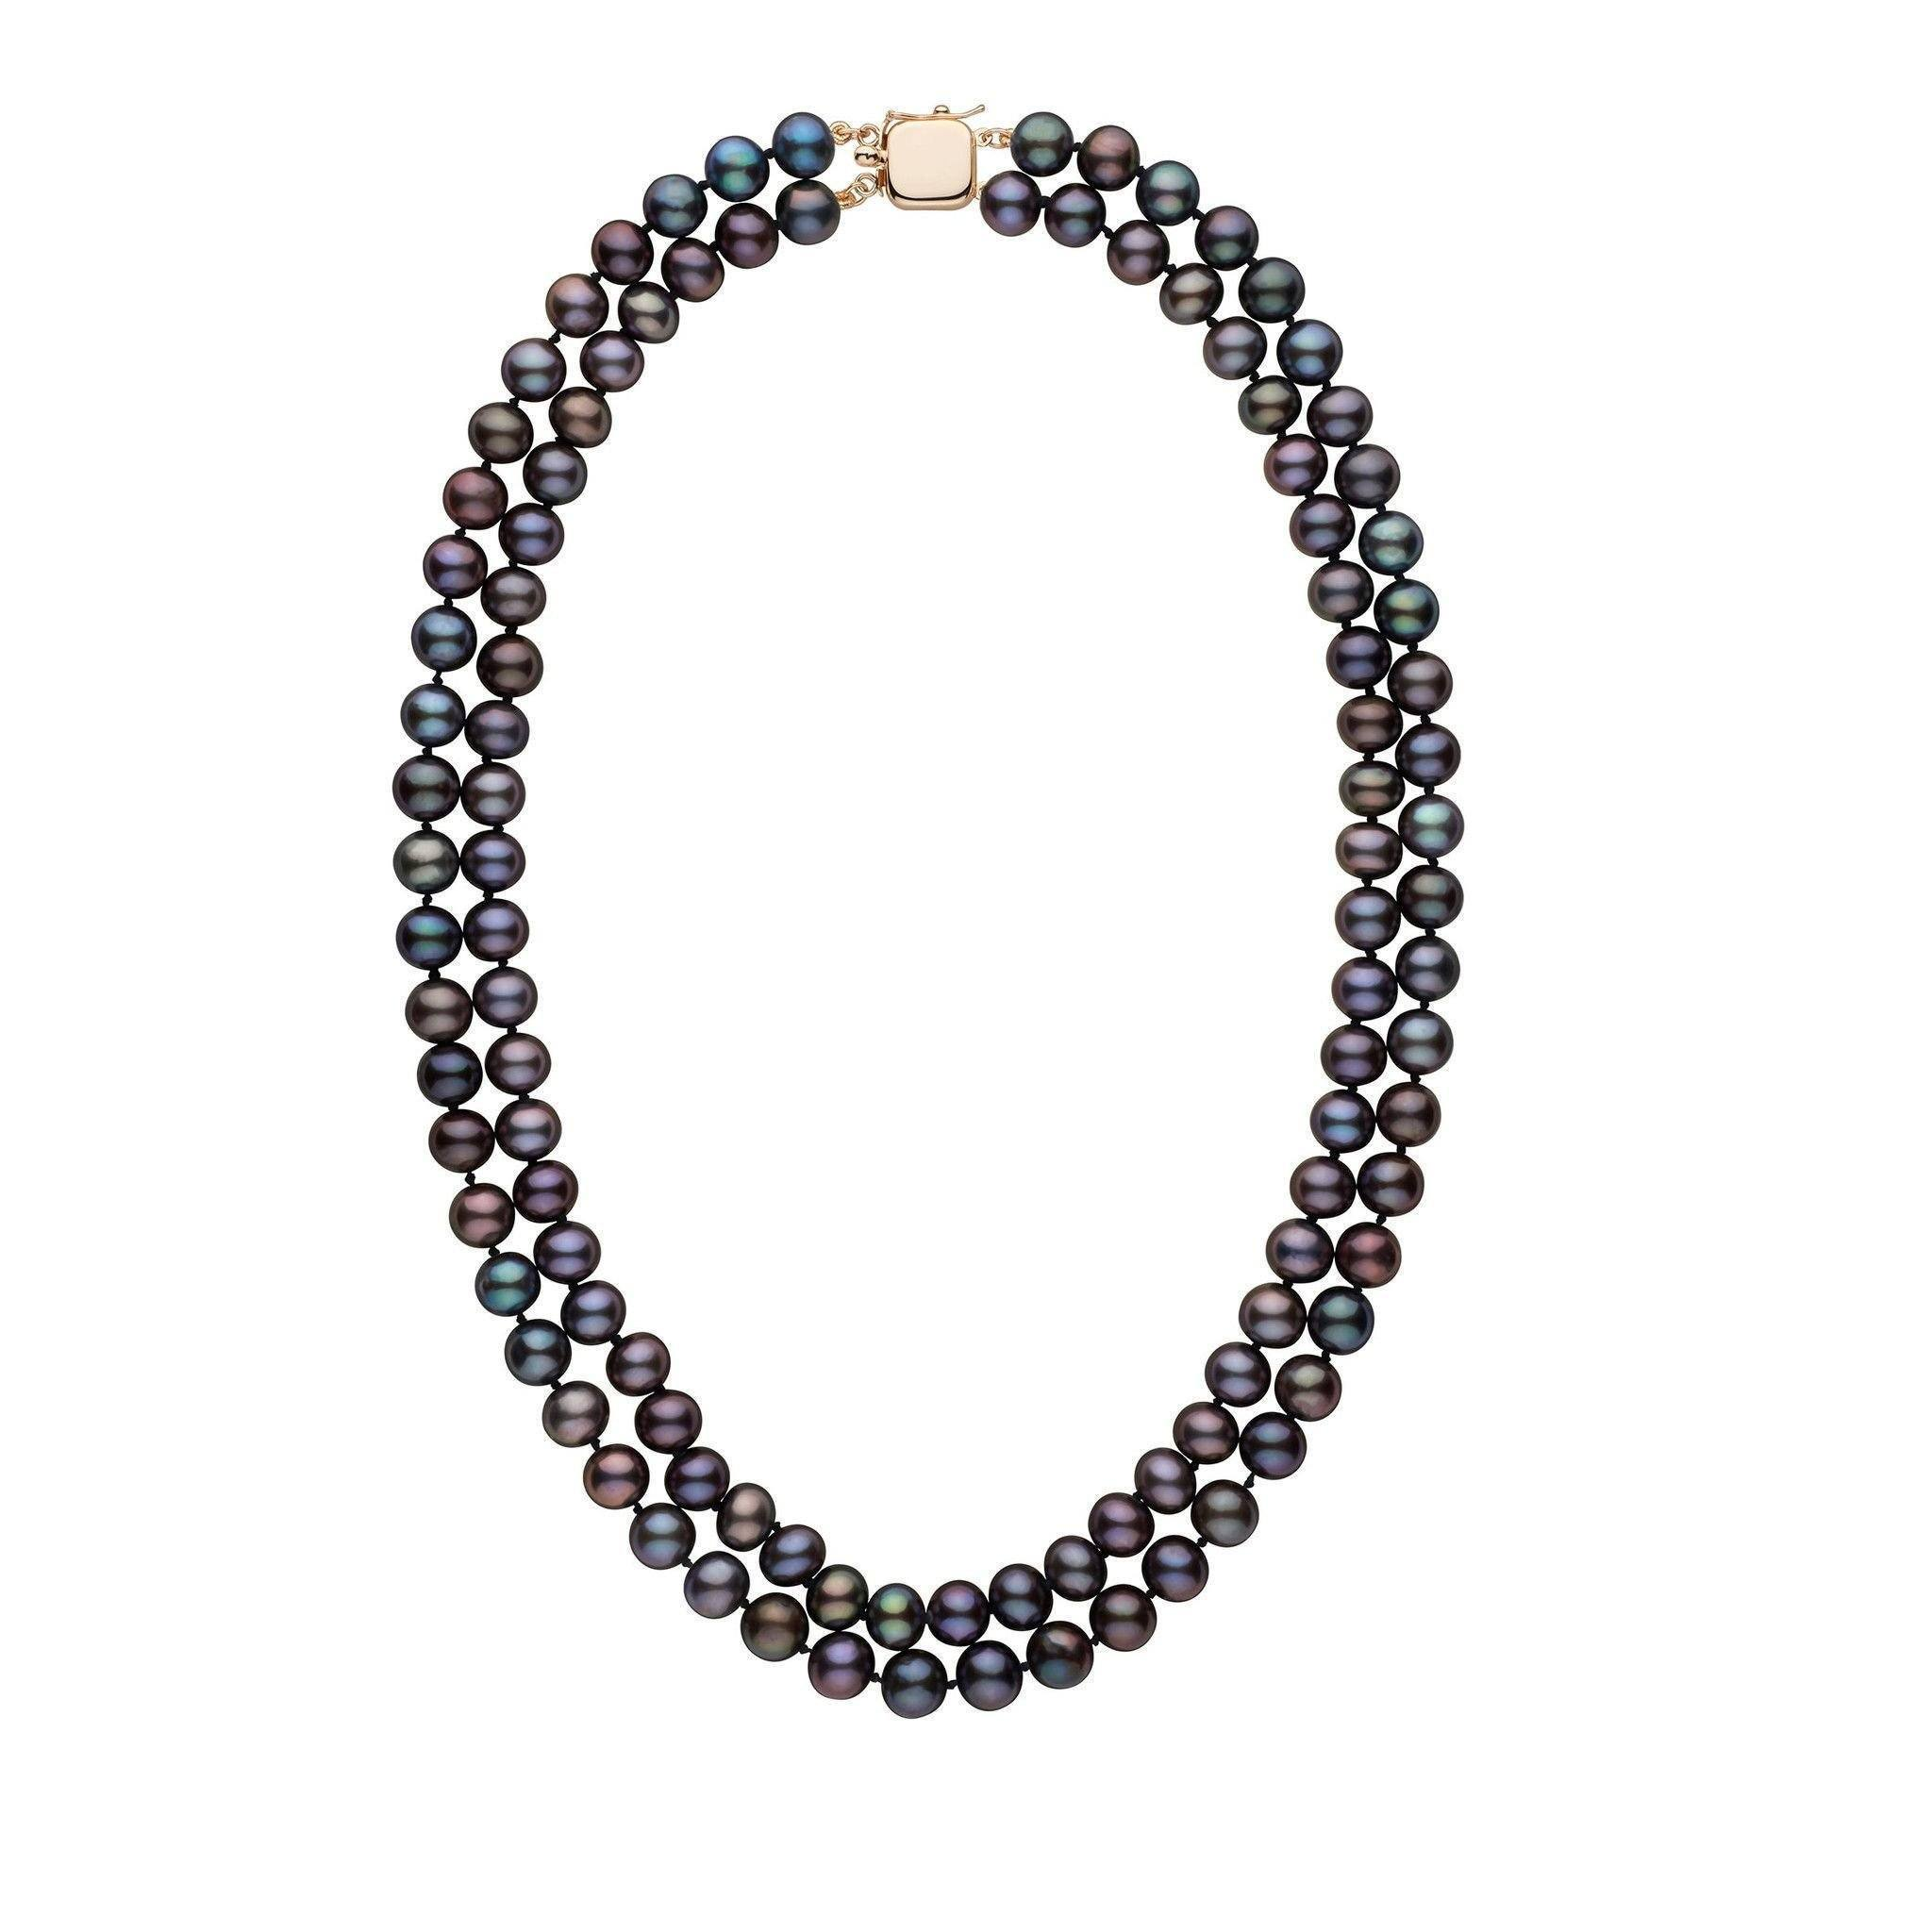 7.5-8.0 mm Double Strand AA+ Black Freshwater Cultured Pearl Necklace